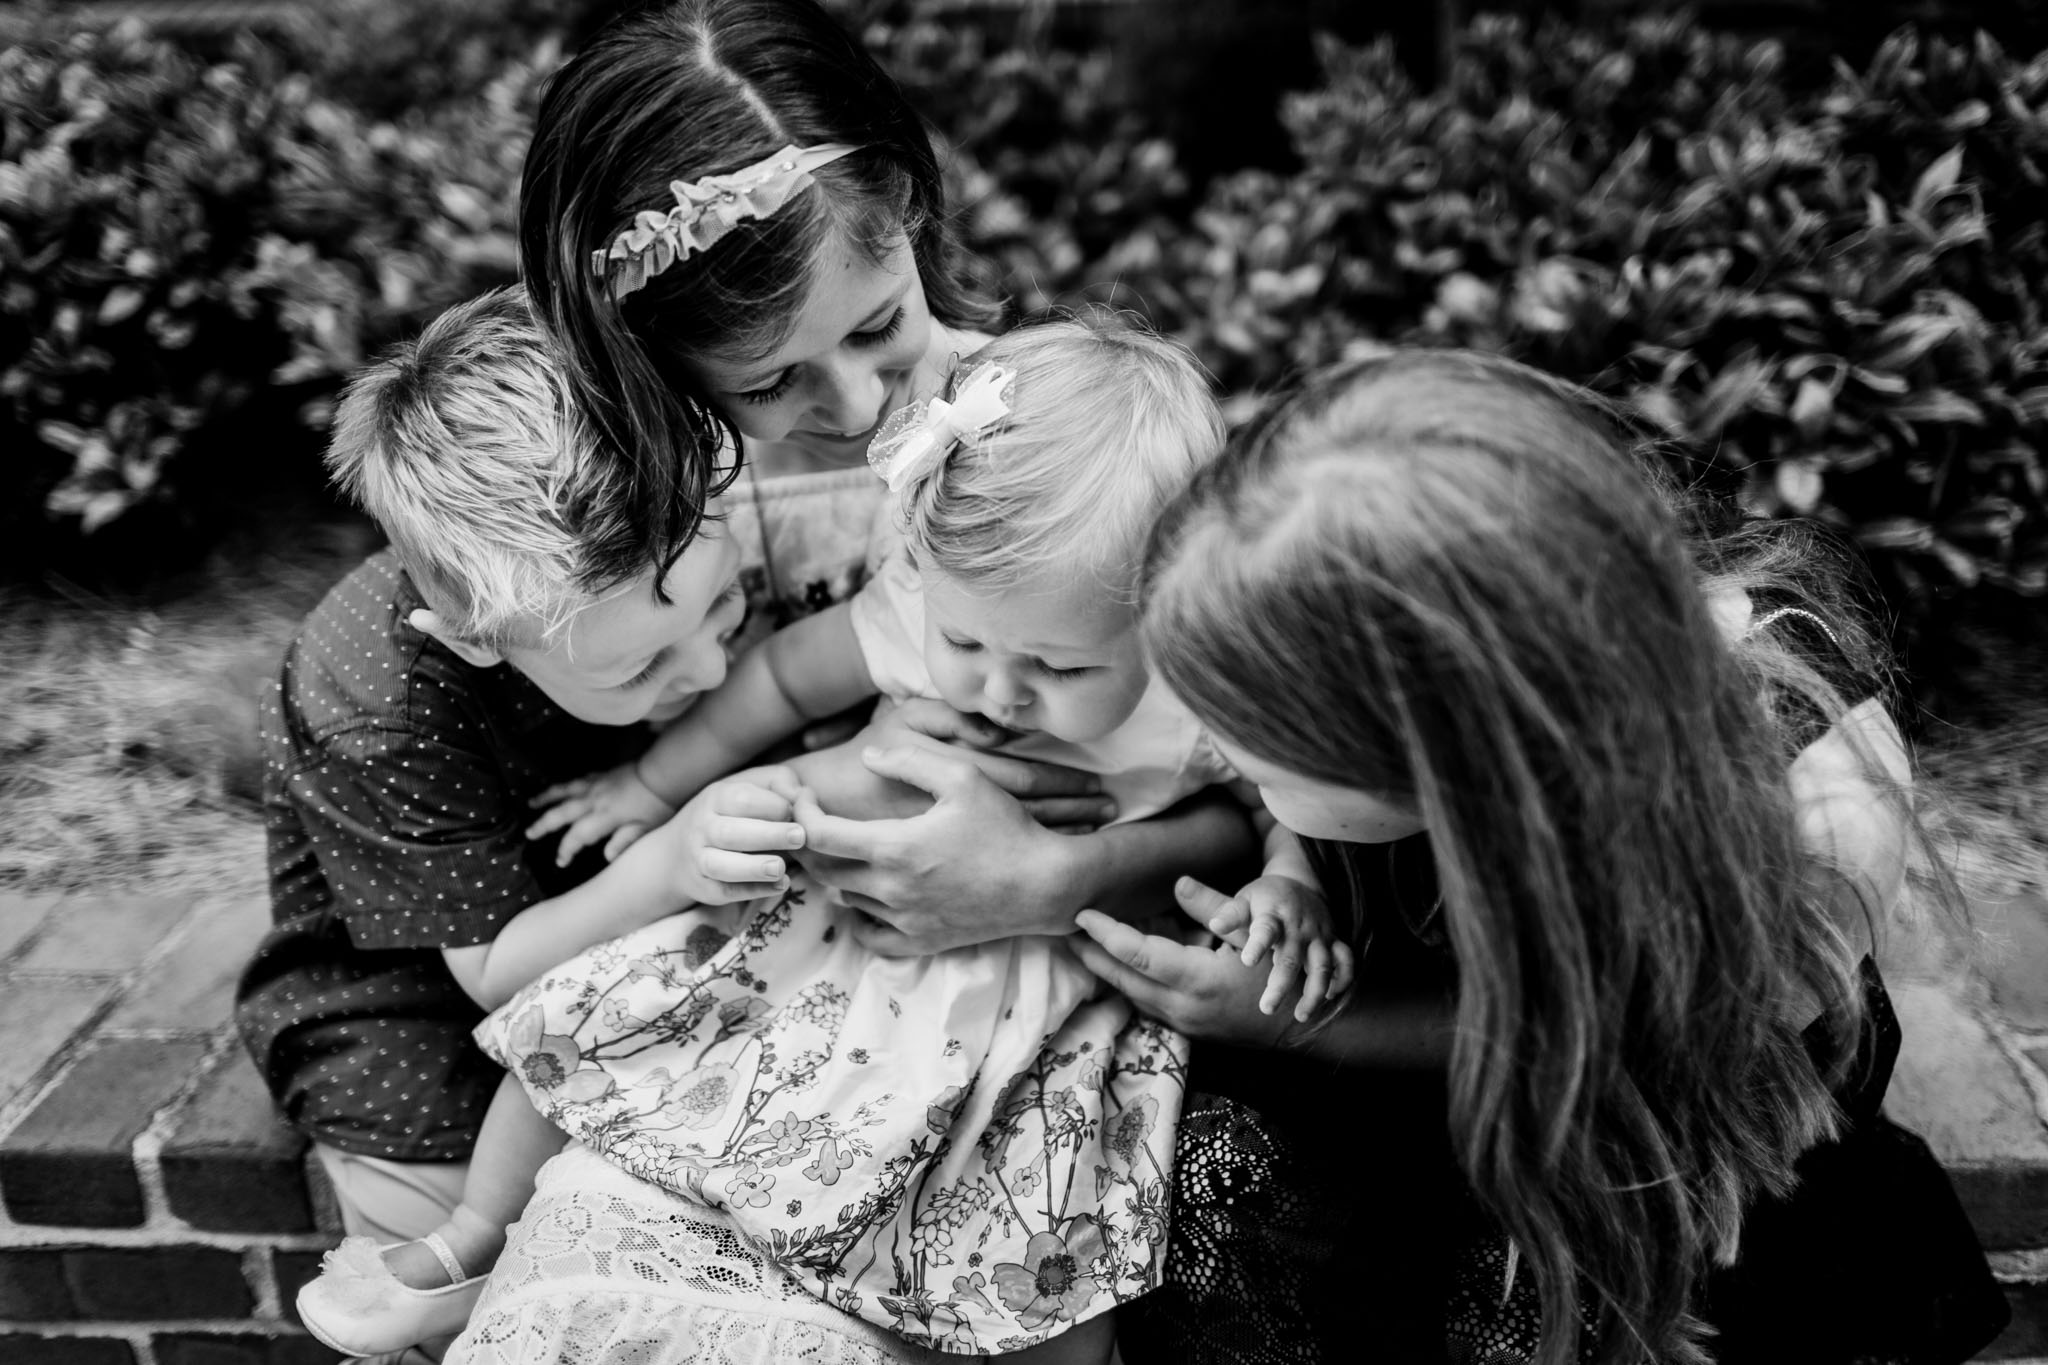 Durham Family Photographer | By G. Lin Photography | Black and white portrait of siblings holding baby sister